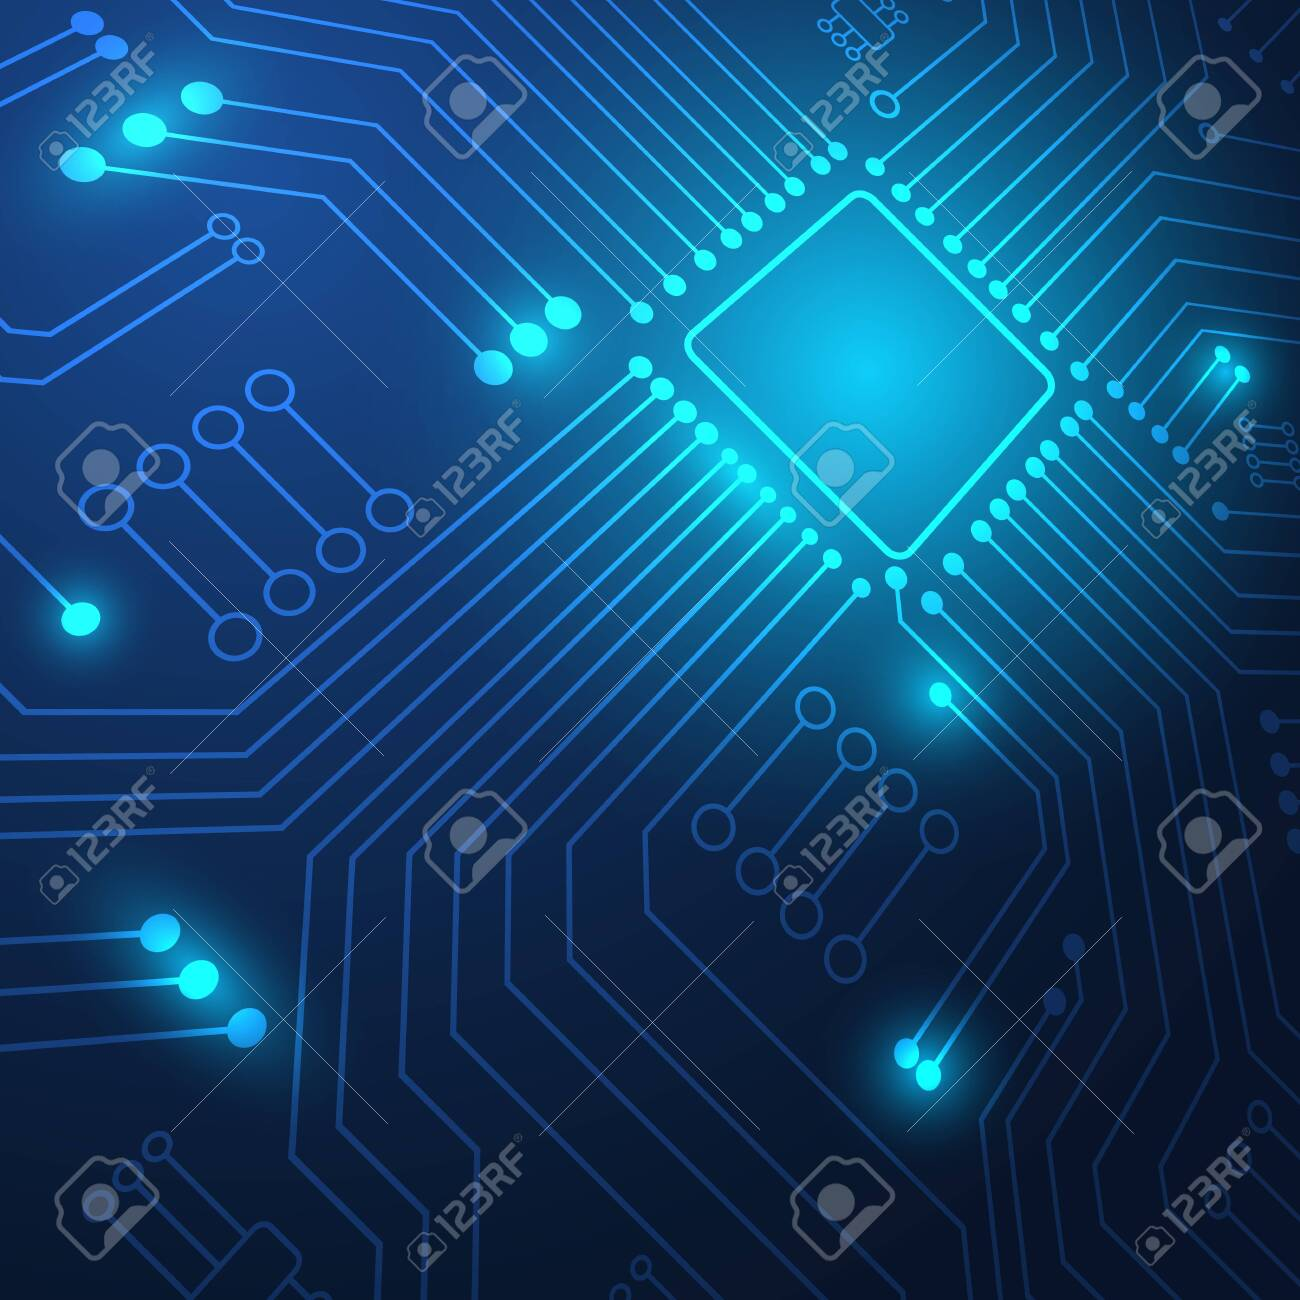 Circuit board technology background with hi-tech digital data connection system and computer electronic desing - 139204677